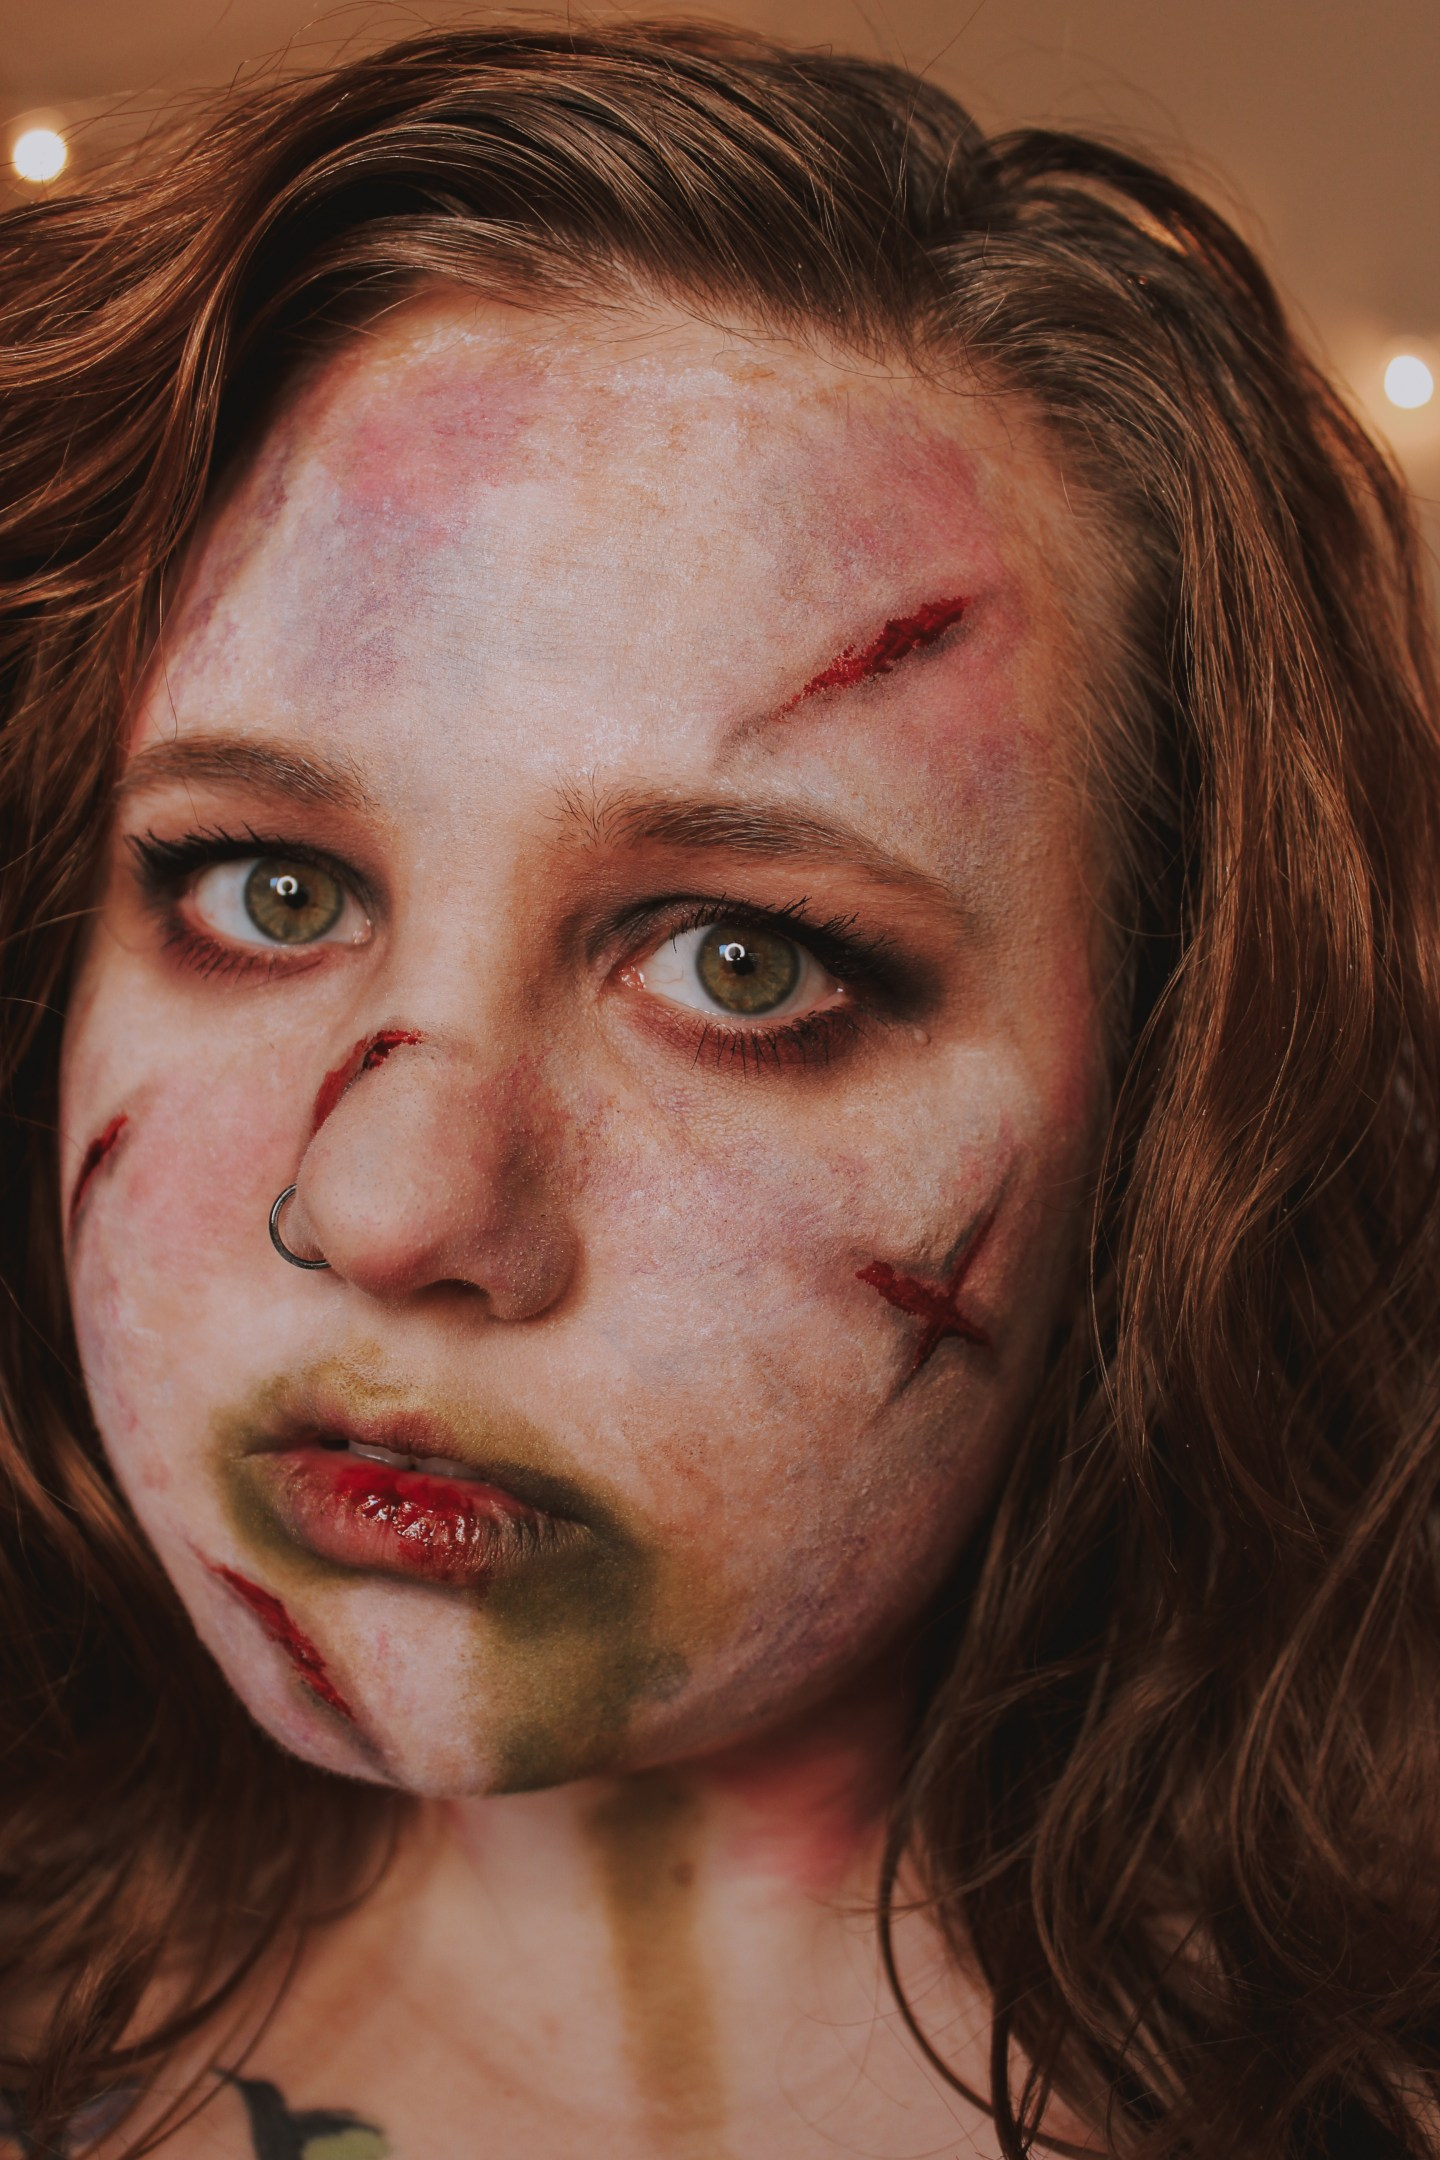 The Power of Christ Compels You! Regan from the Exorcist Inspired Makeup Look 8